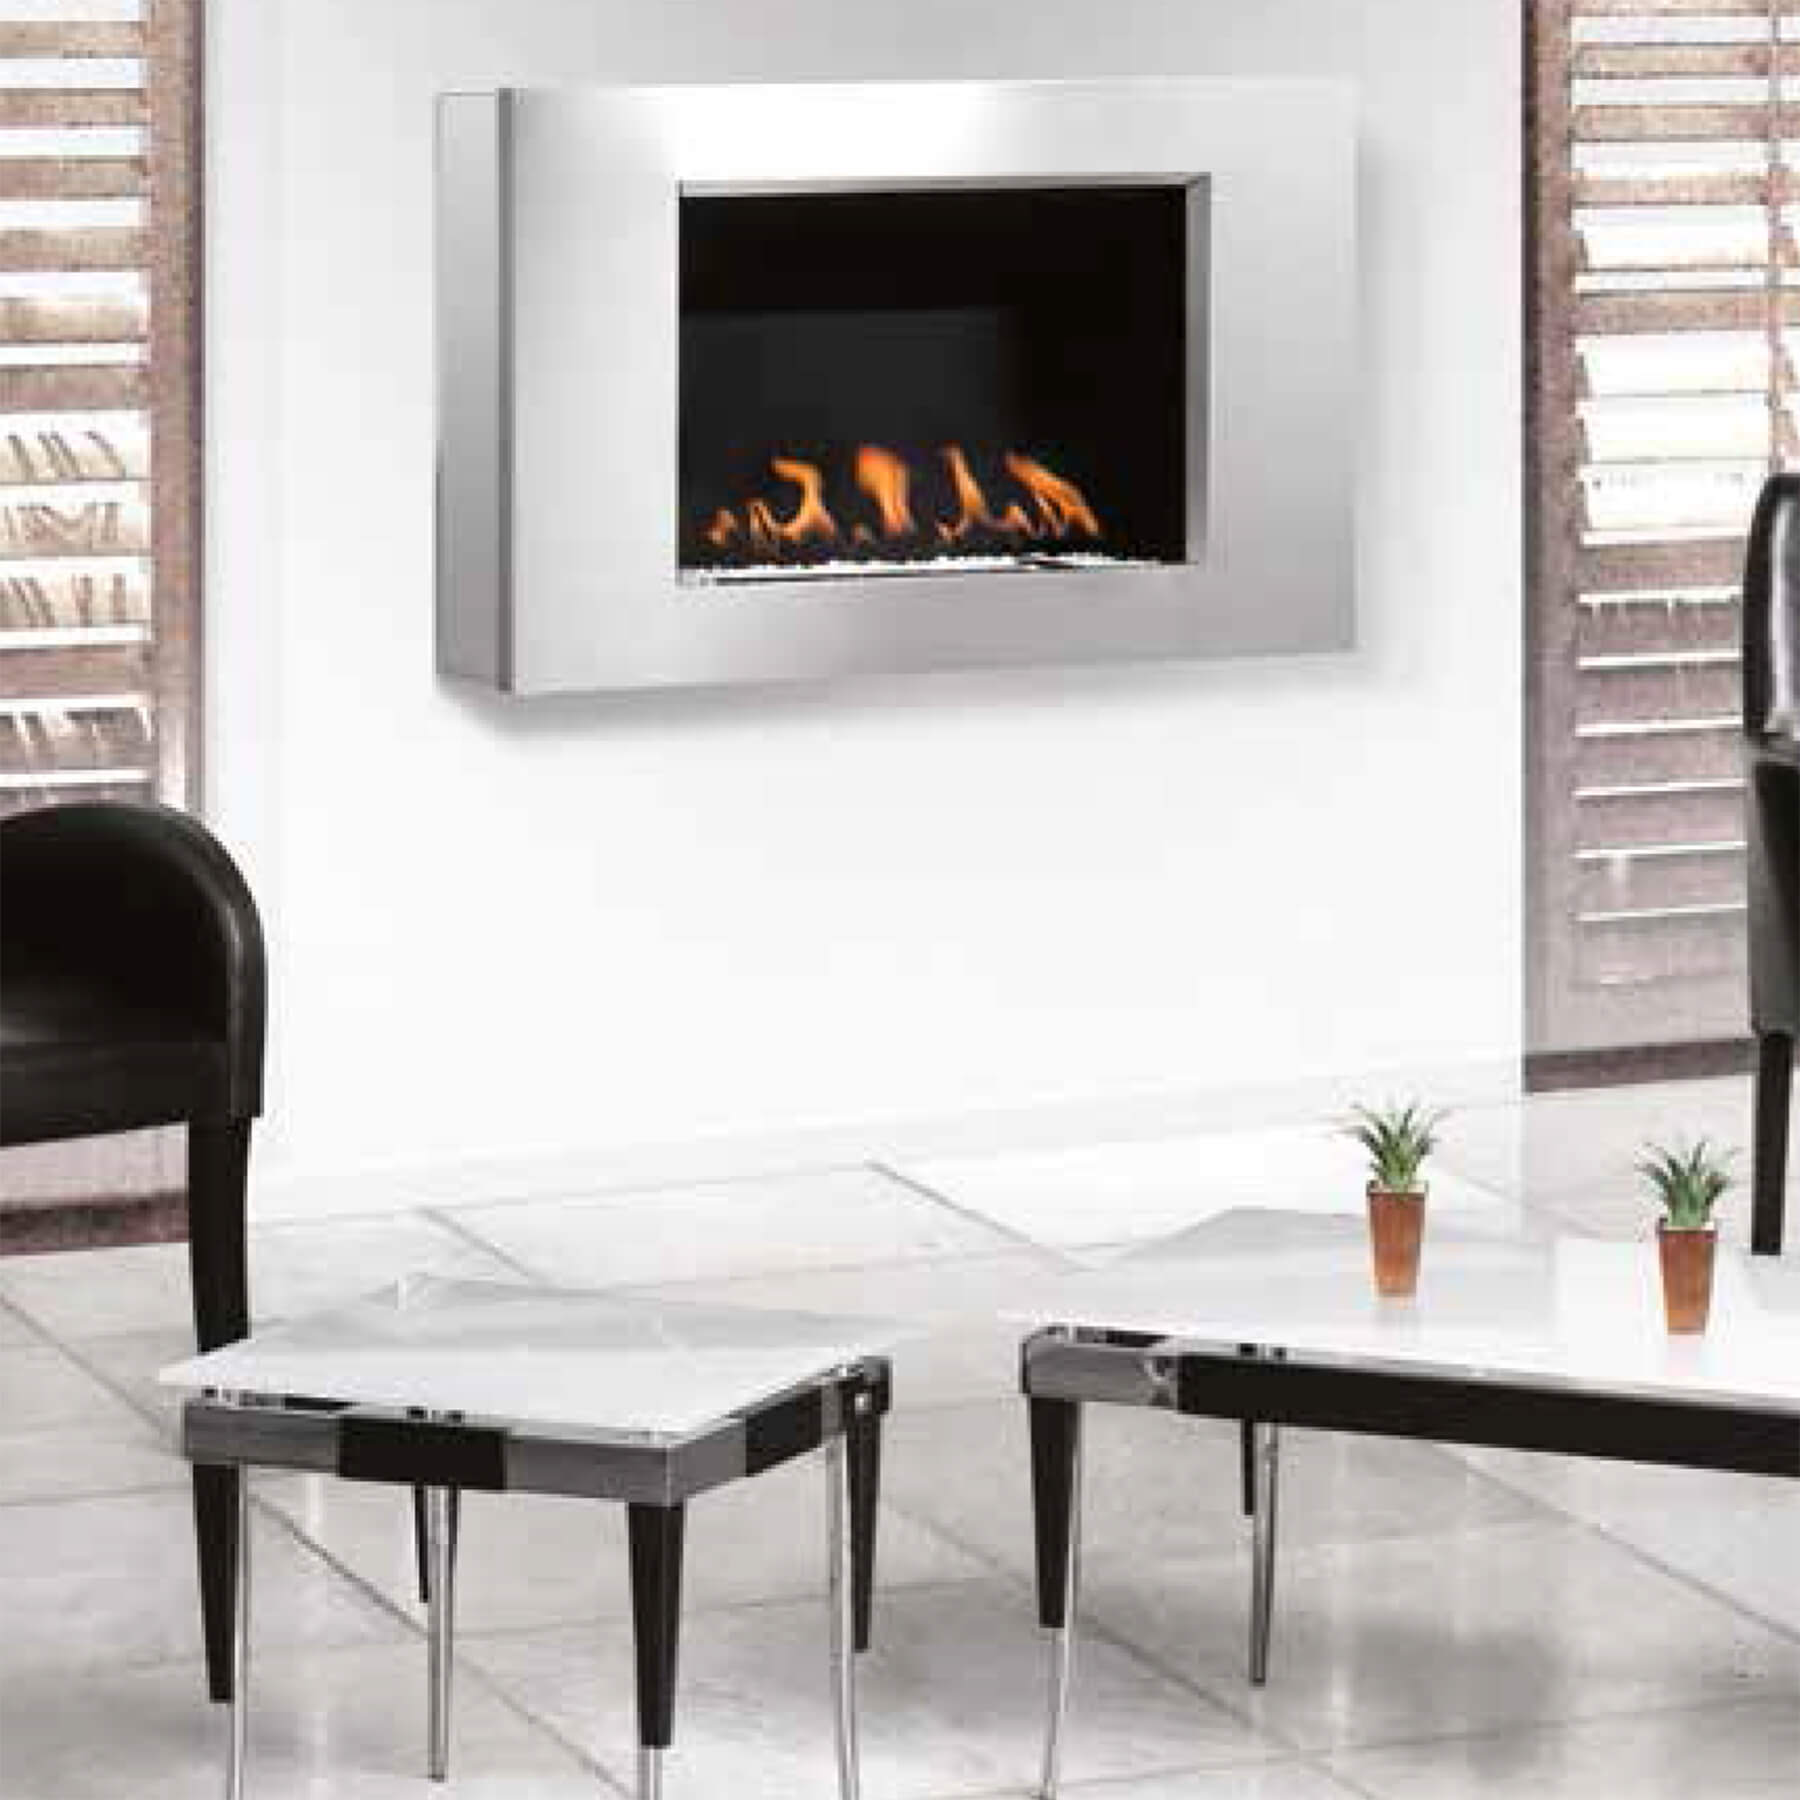 Gas-Fireplaces-Concept-Wall-Environment